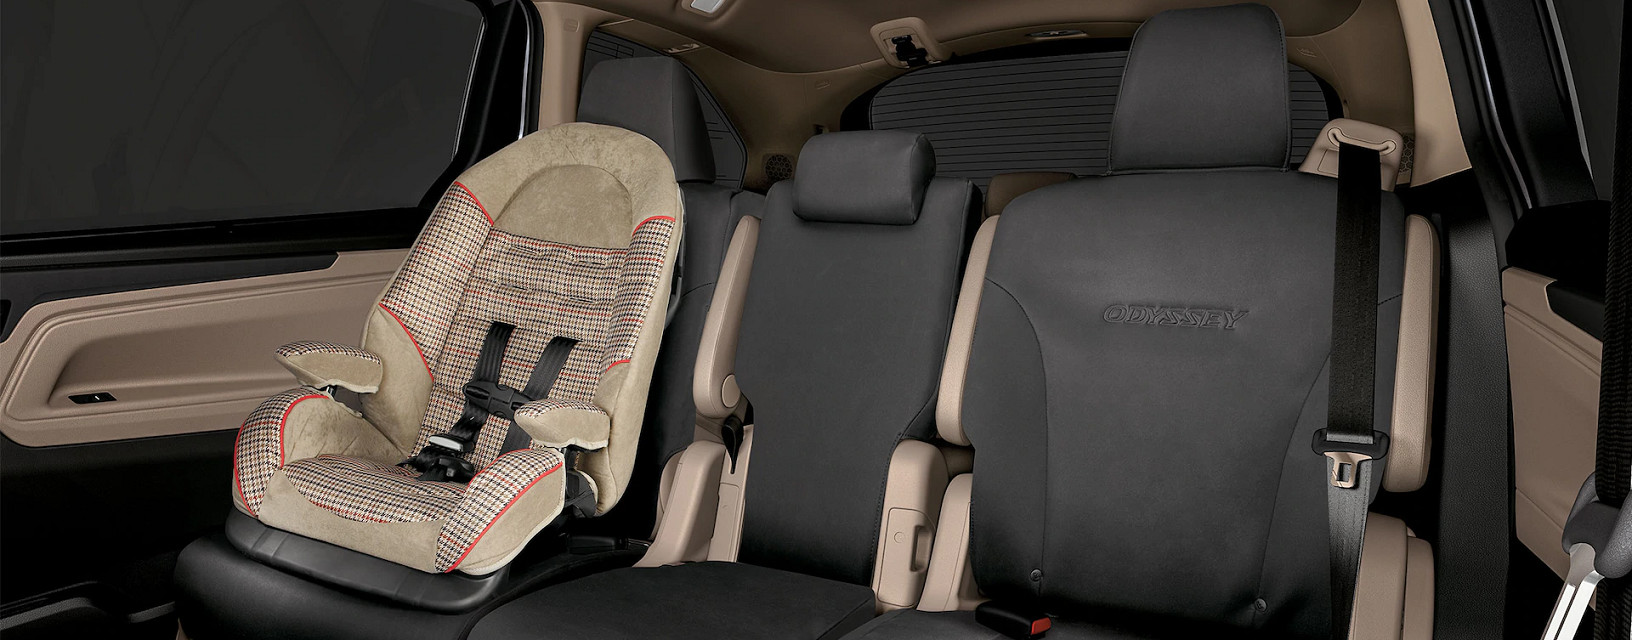 Spacious Seats of the 2020 Odyssey